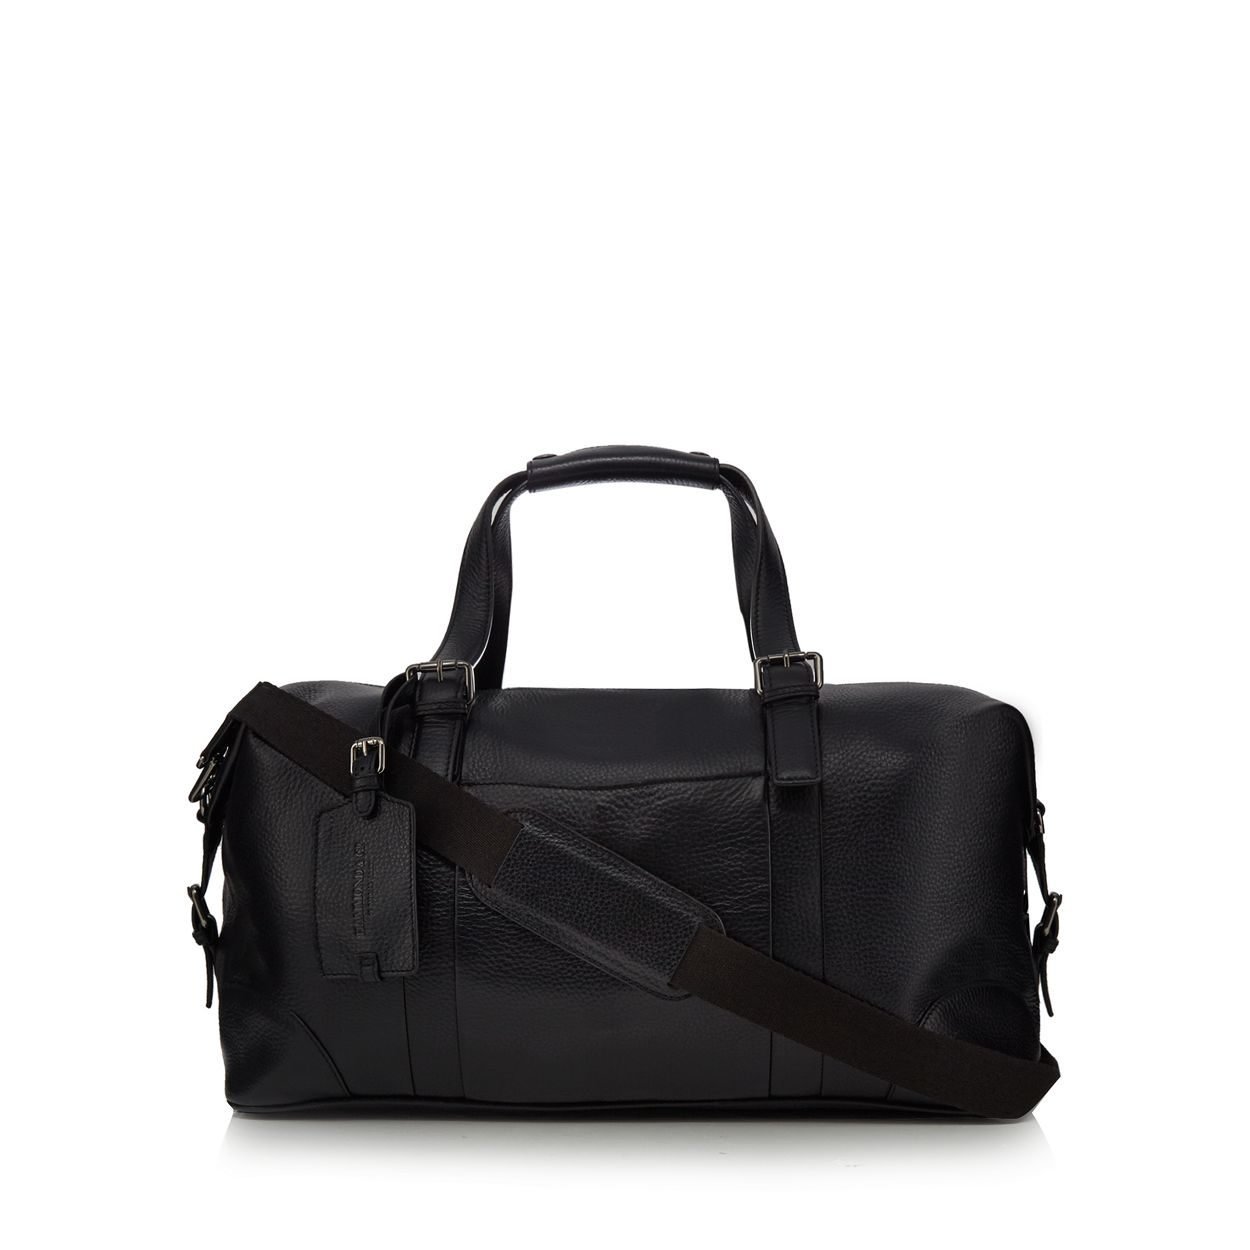 Hammond & Co. by Patrick Grant Black grained leather holdall bag